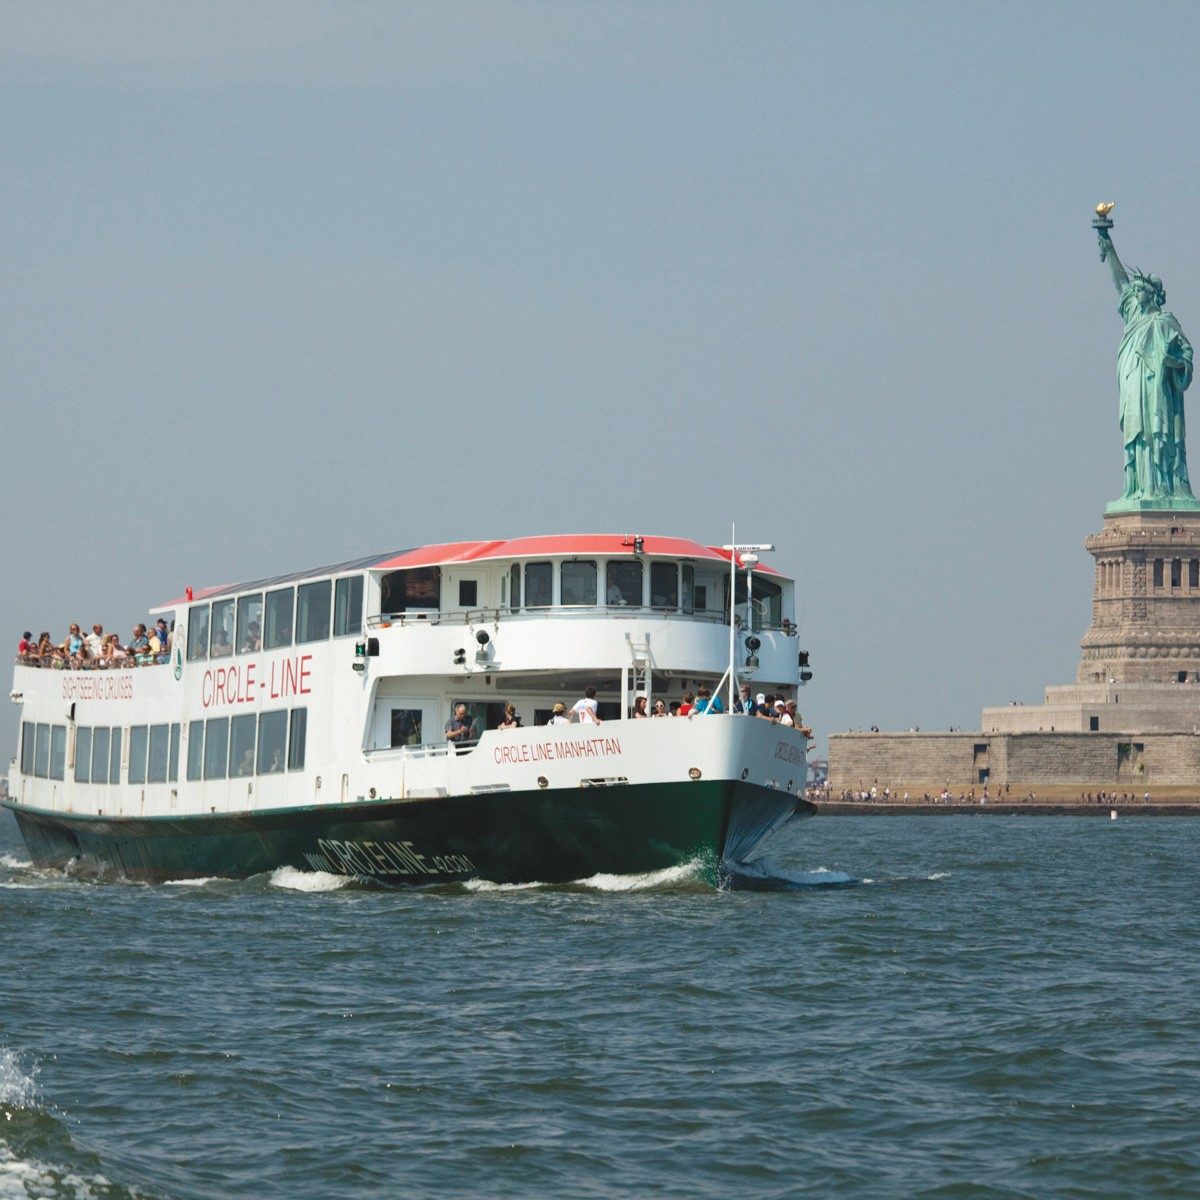 Landmark Cruise: Circle Line Sightseeing